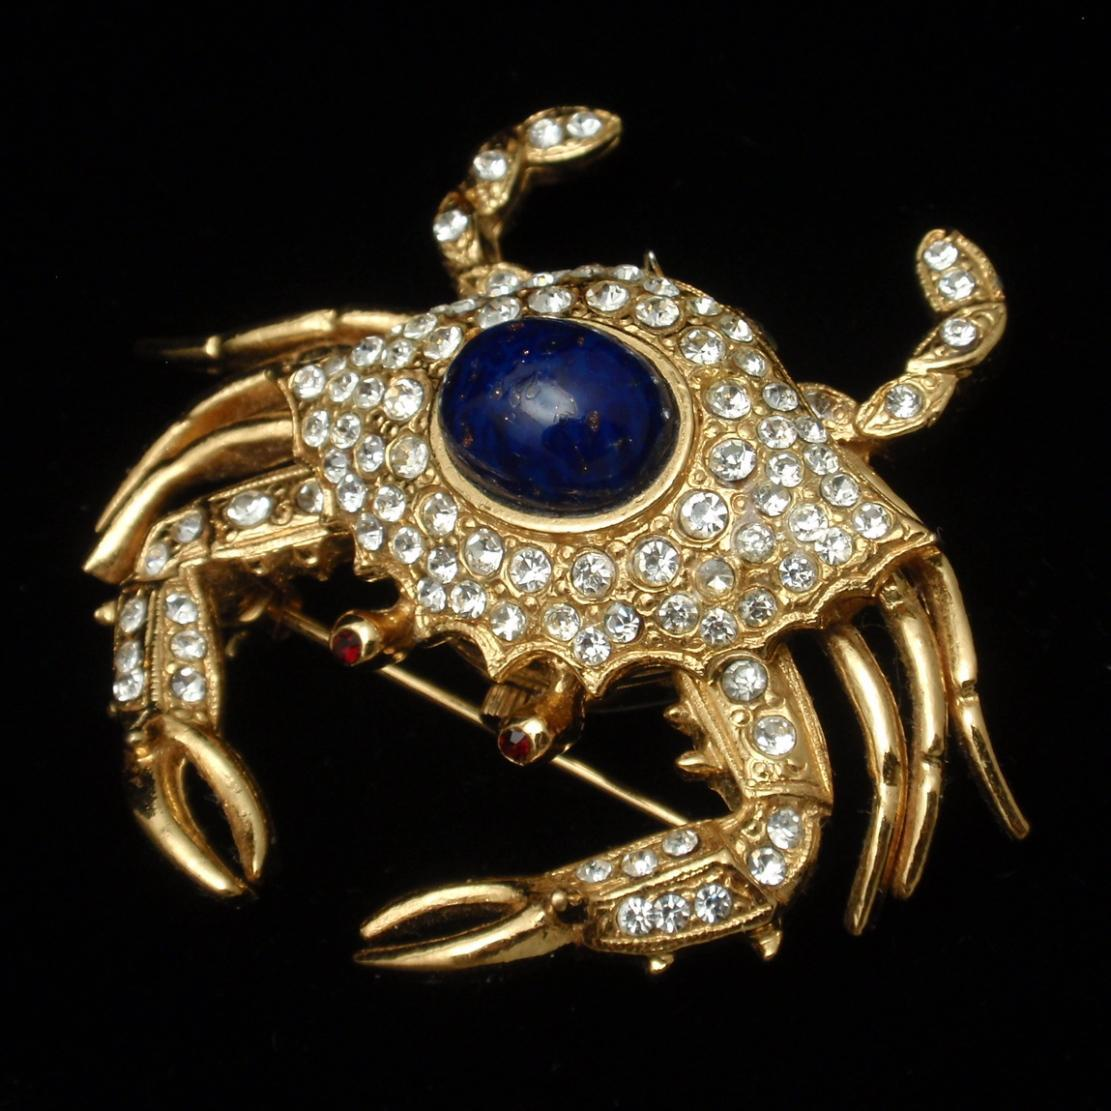 Crab Brooch Pin Opens to Watch Rhinestones KJL Kenneth Jay Lane